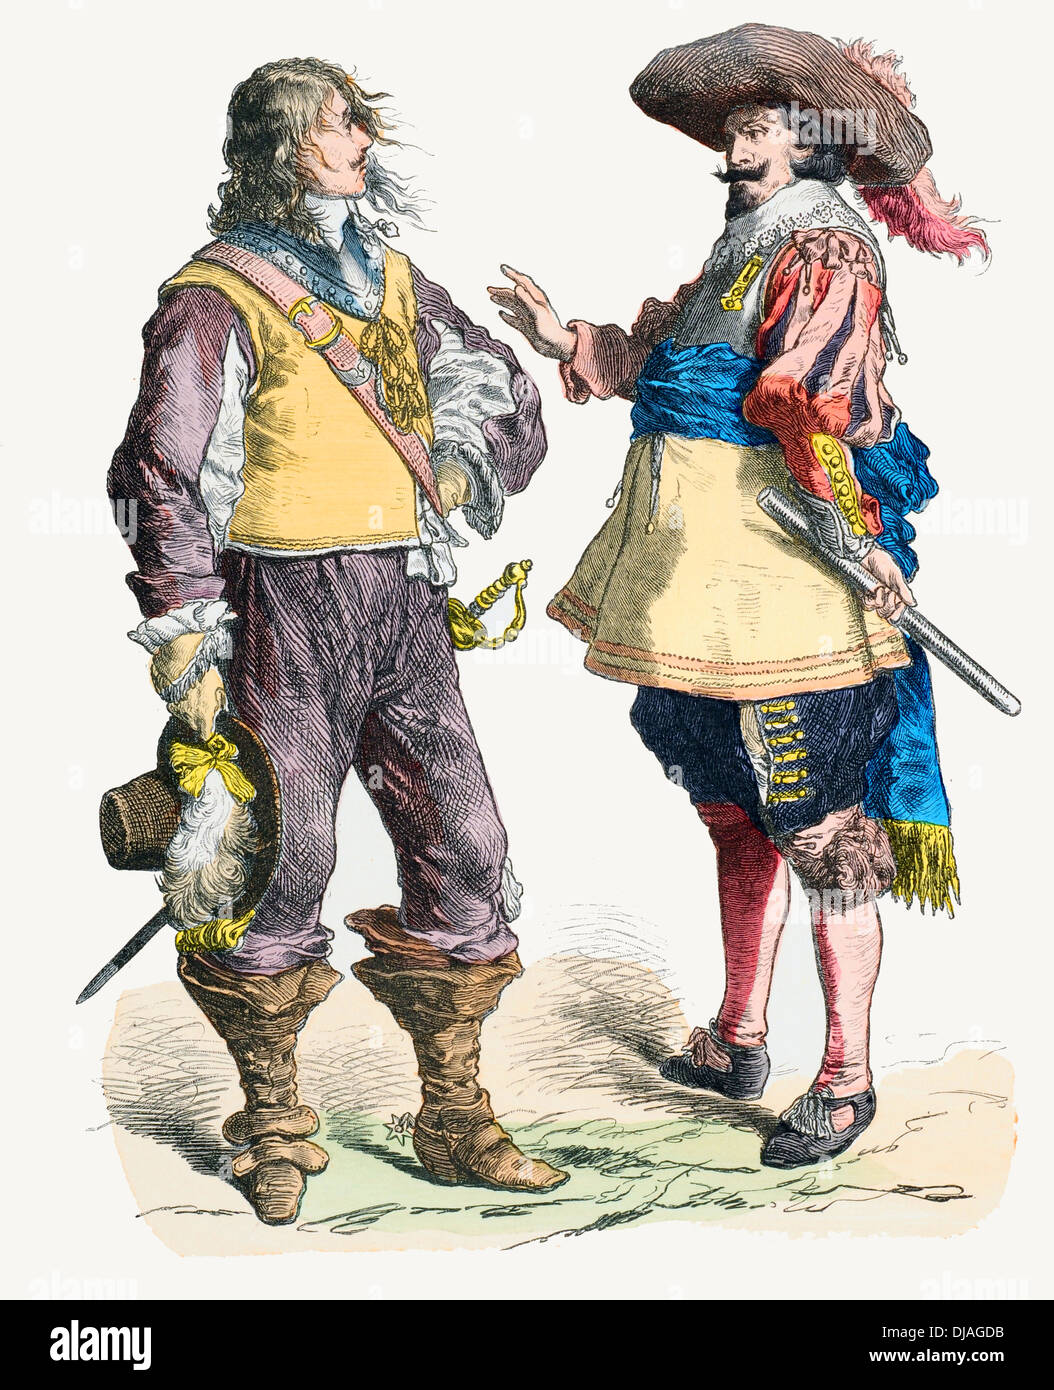 17th century XVII 1638 1640 English soldier (left) Flanders 1640 1650 soldier (right) Stock Photo